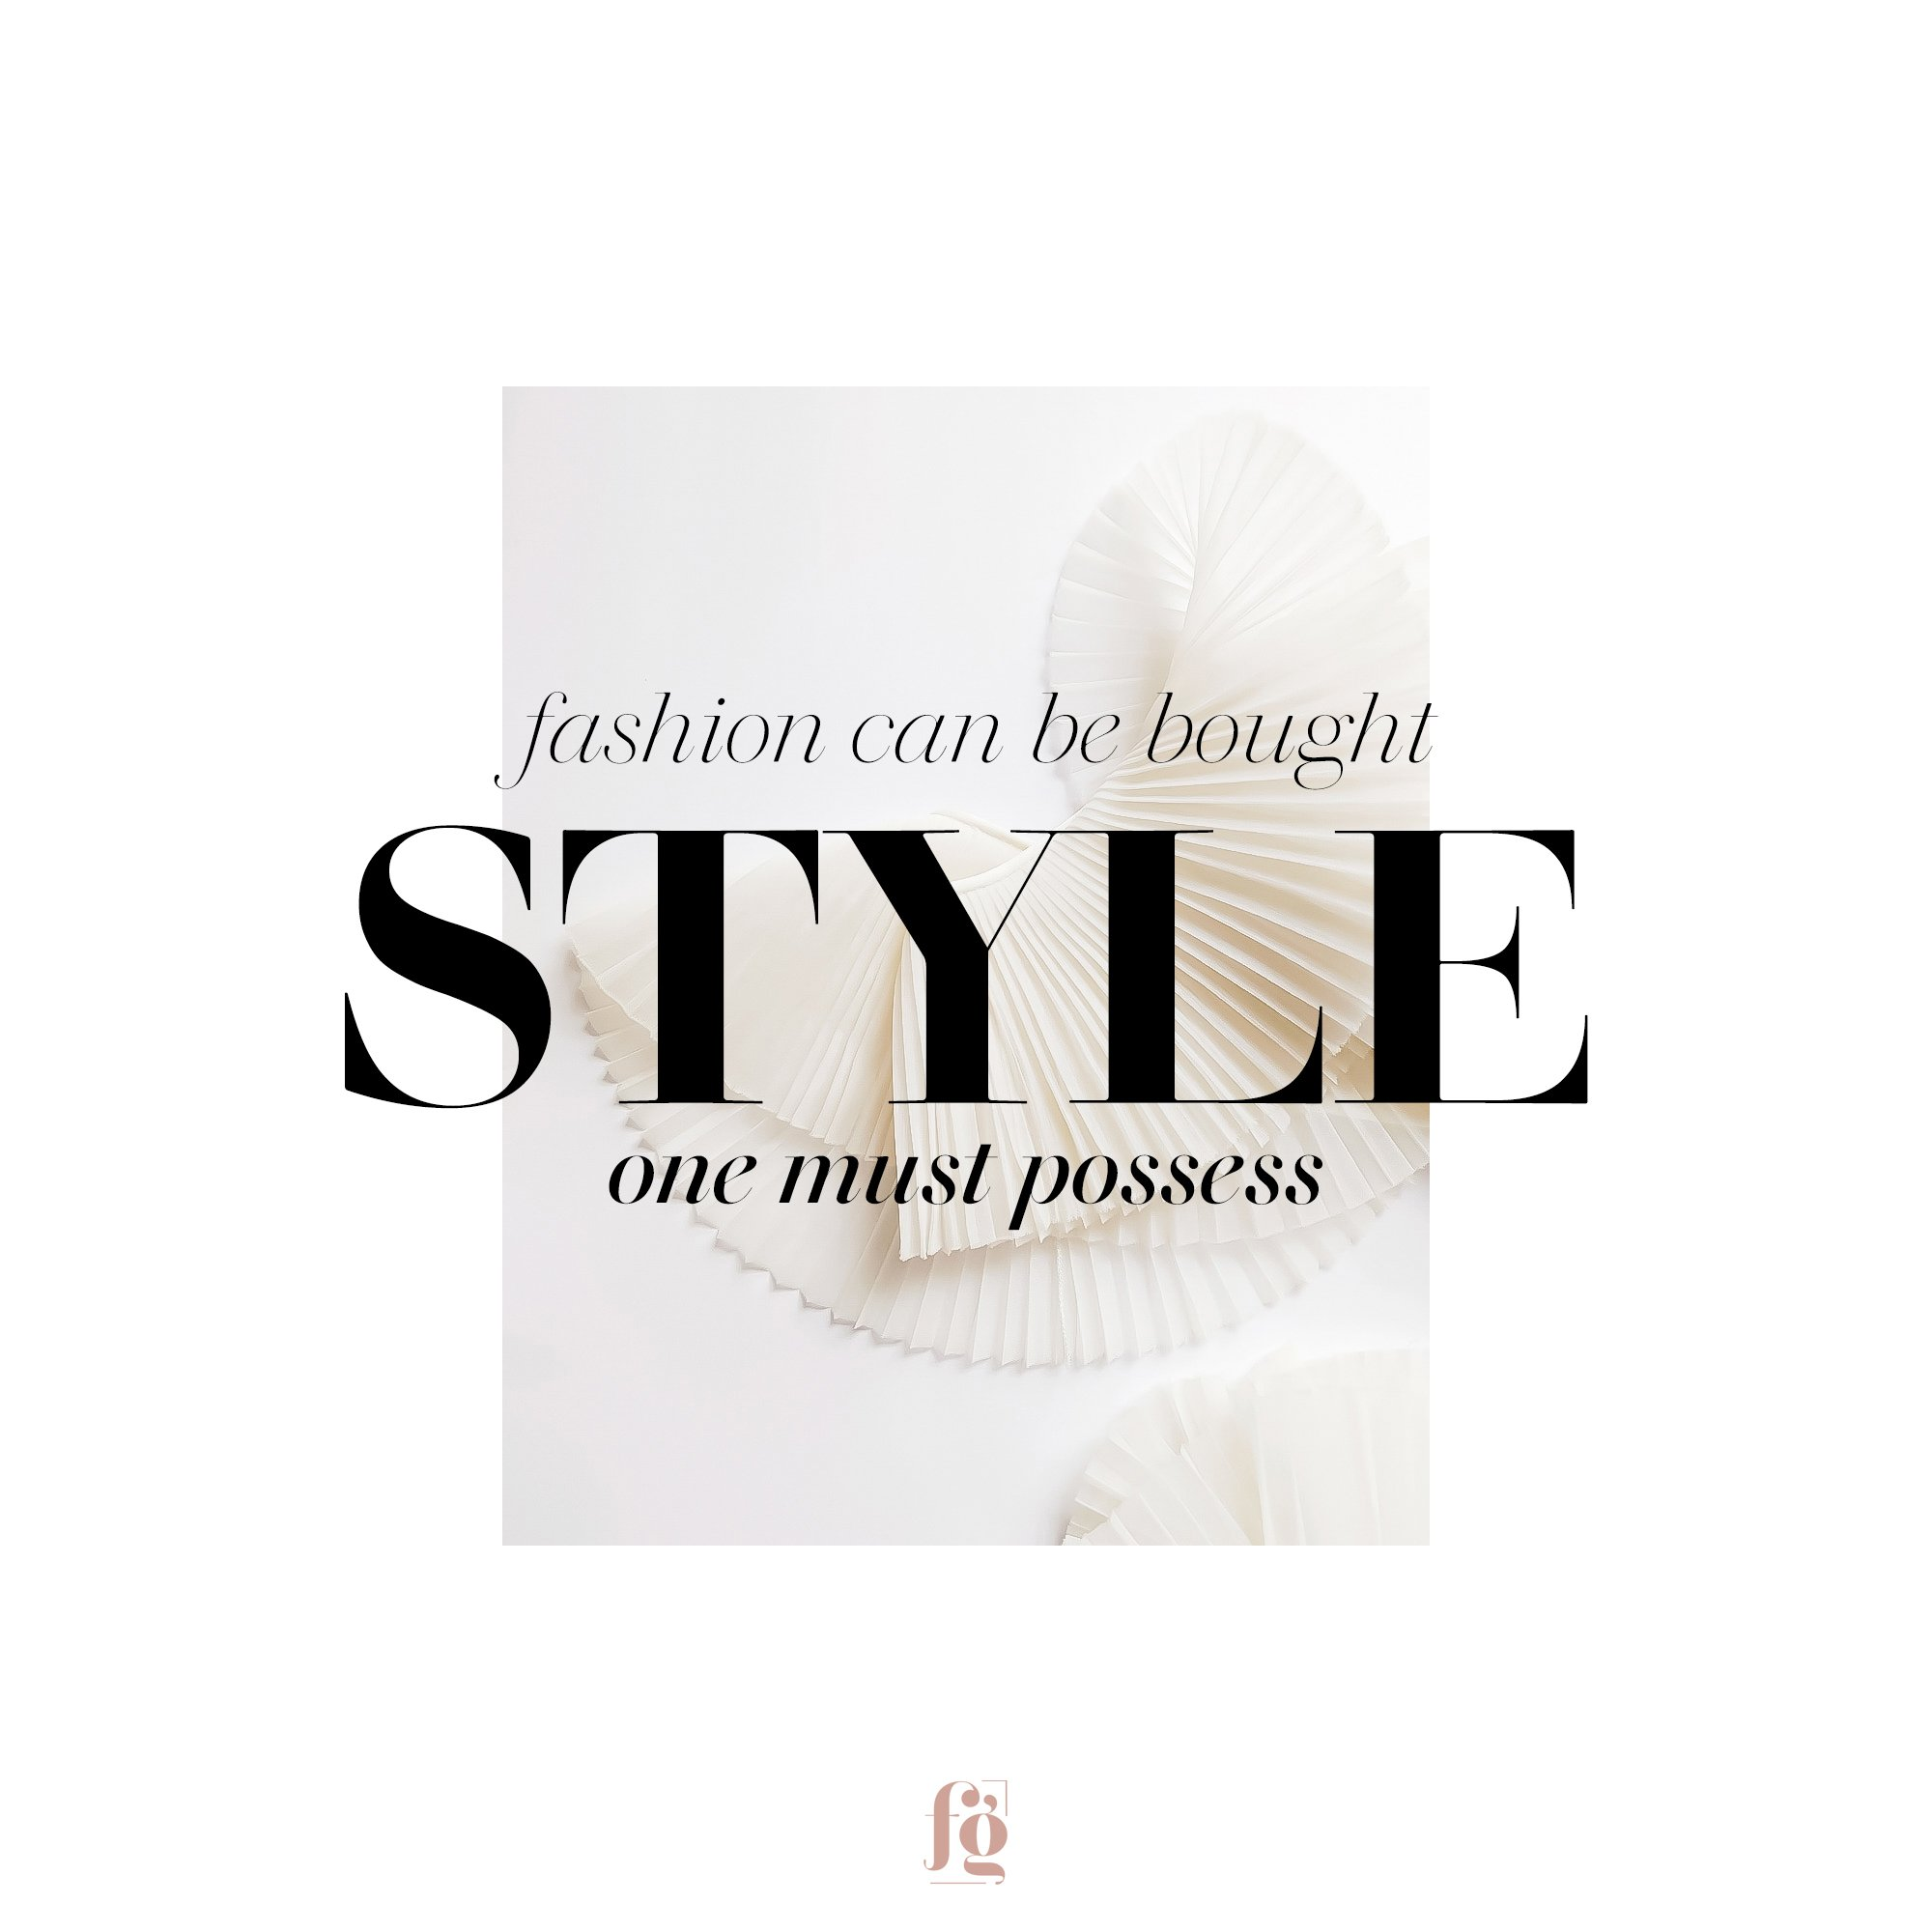 Fashion can be bought, style one must possess.